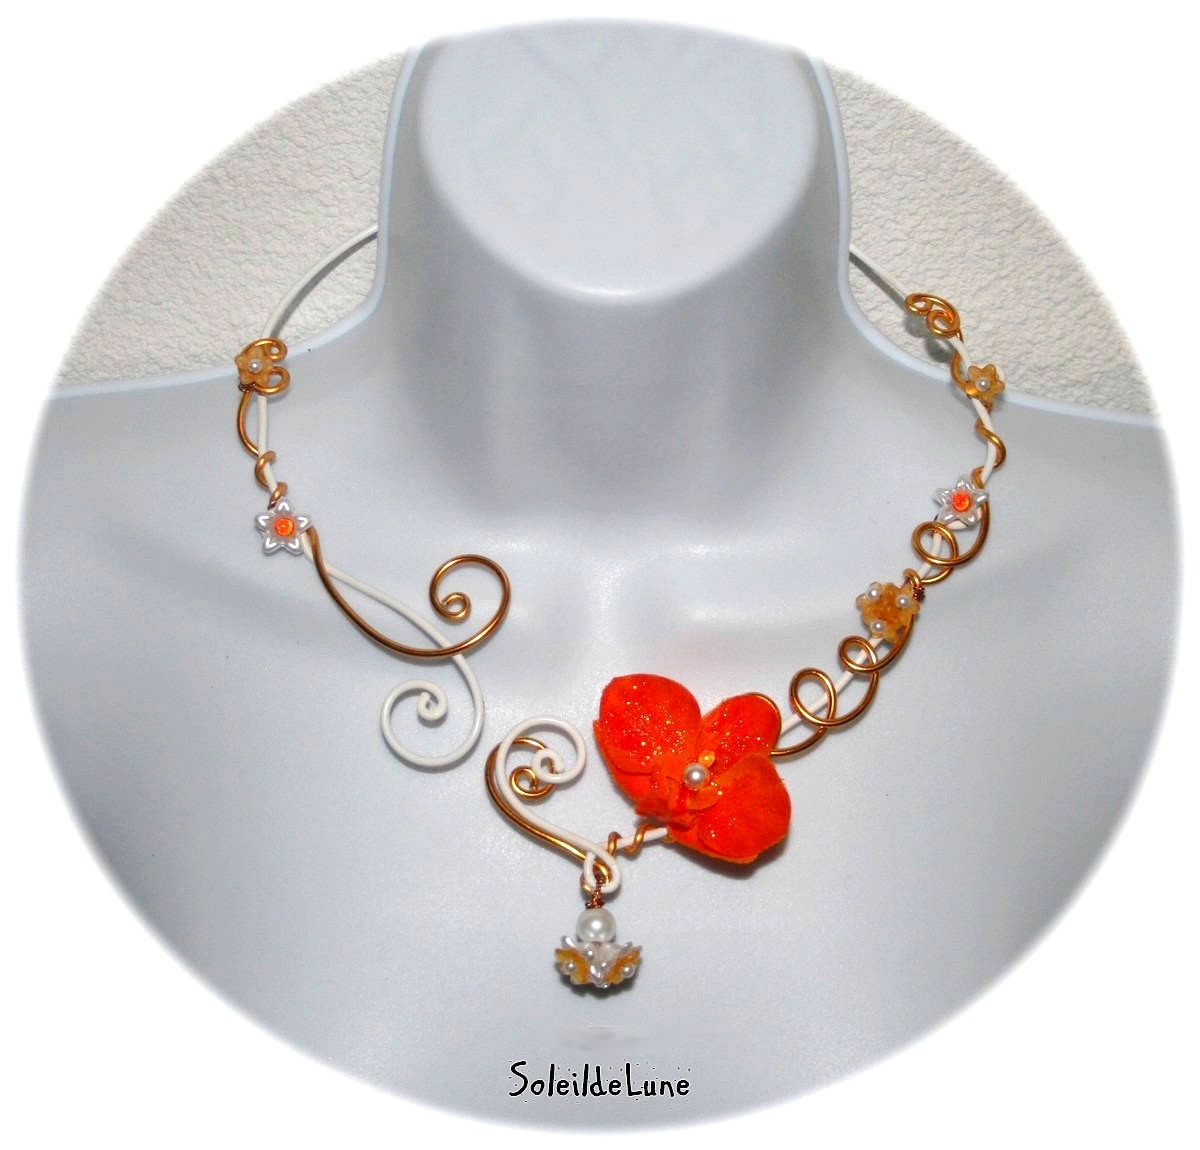 Collier mariage fleur orchidée orange sur fil alu blanc & orange